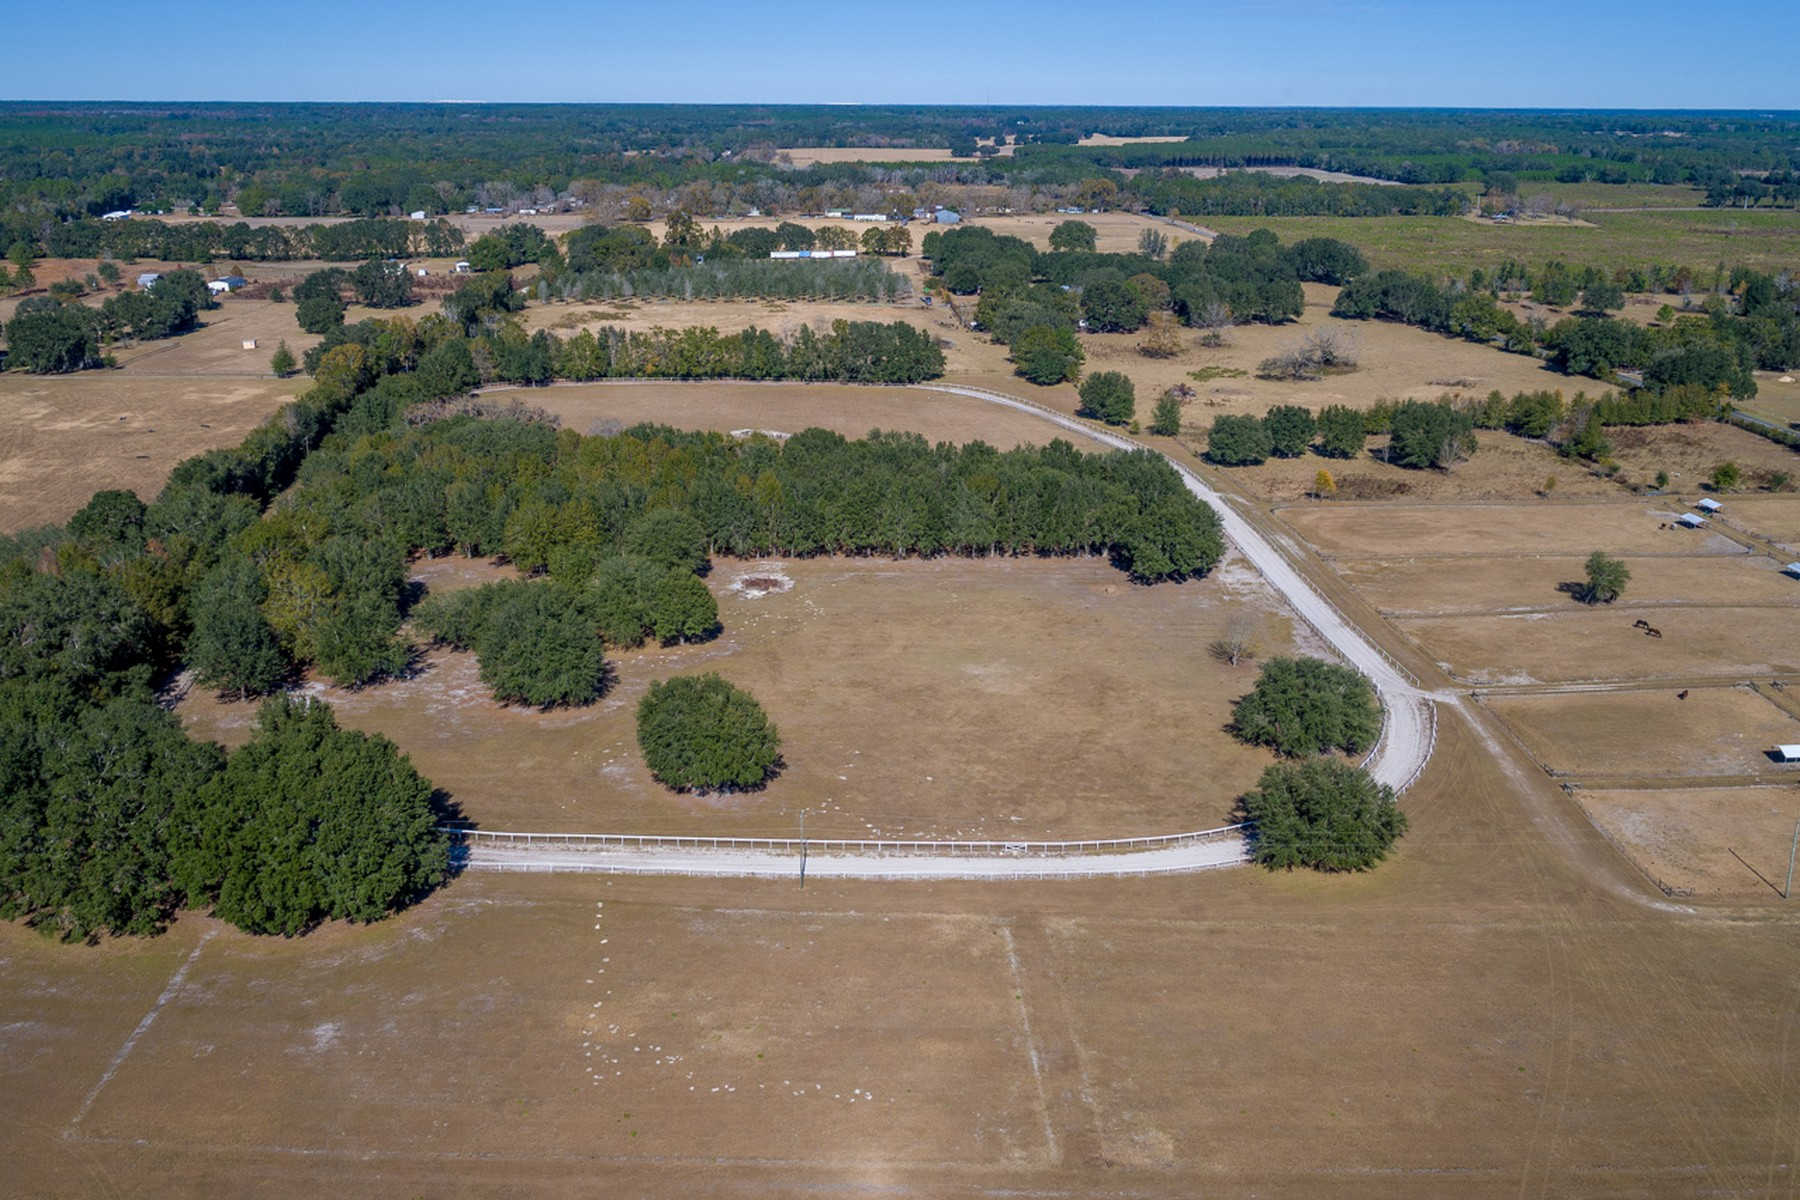 Ferme / Ranch / Plantation pour l Vente à Turnkey Equestrian Ranch 16629 27th Road Lake City, Florida 32024 États-Unis